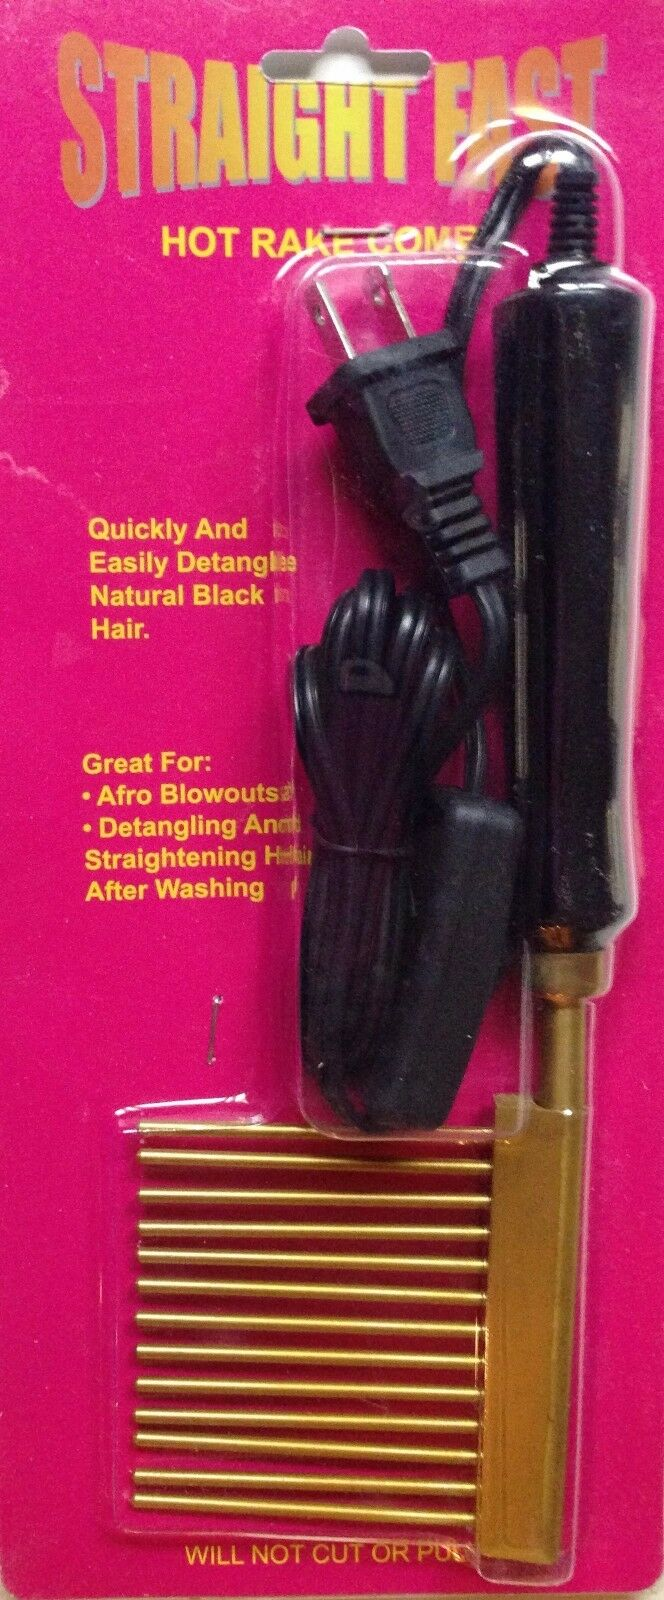 Electric Hair Pressing Straightening Hot Rake Comb By Straight Fast 1 Of 6free Shipping